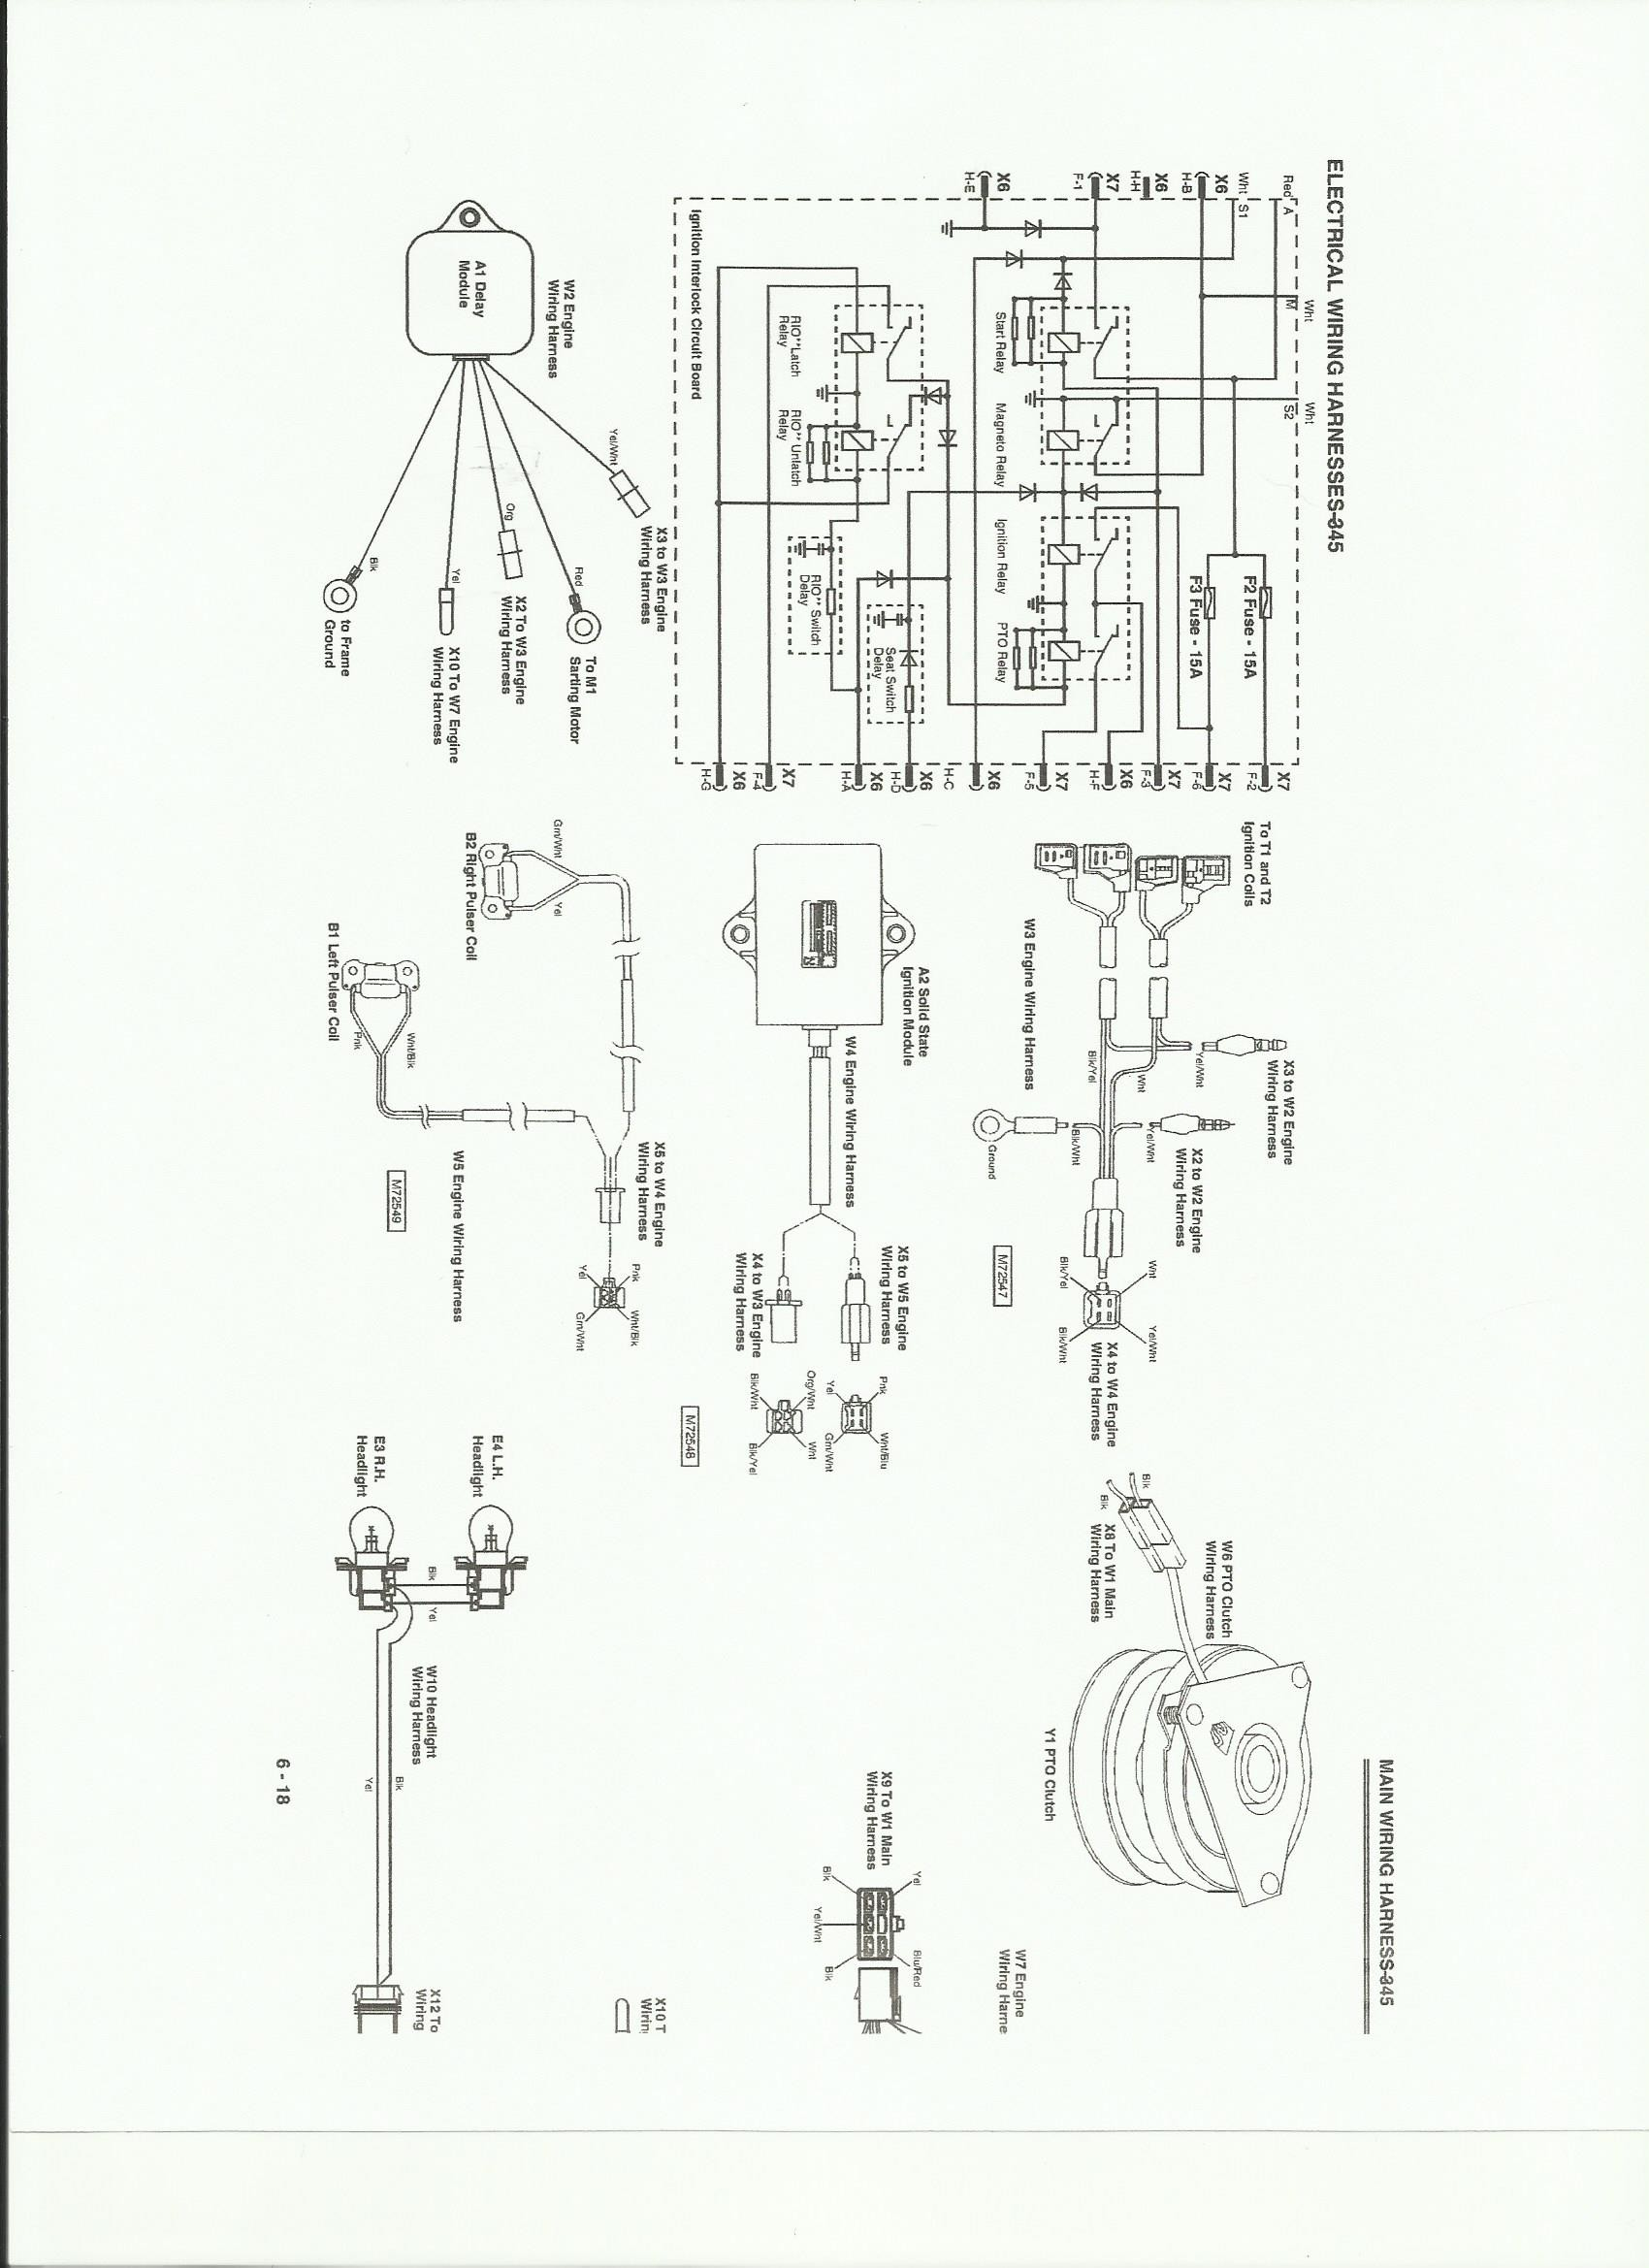 John Deere 345 Electrical Schematic Need A 345 Wiring Diagram Pdf Please Of John Deere 345 Electrical Schematic